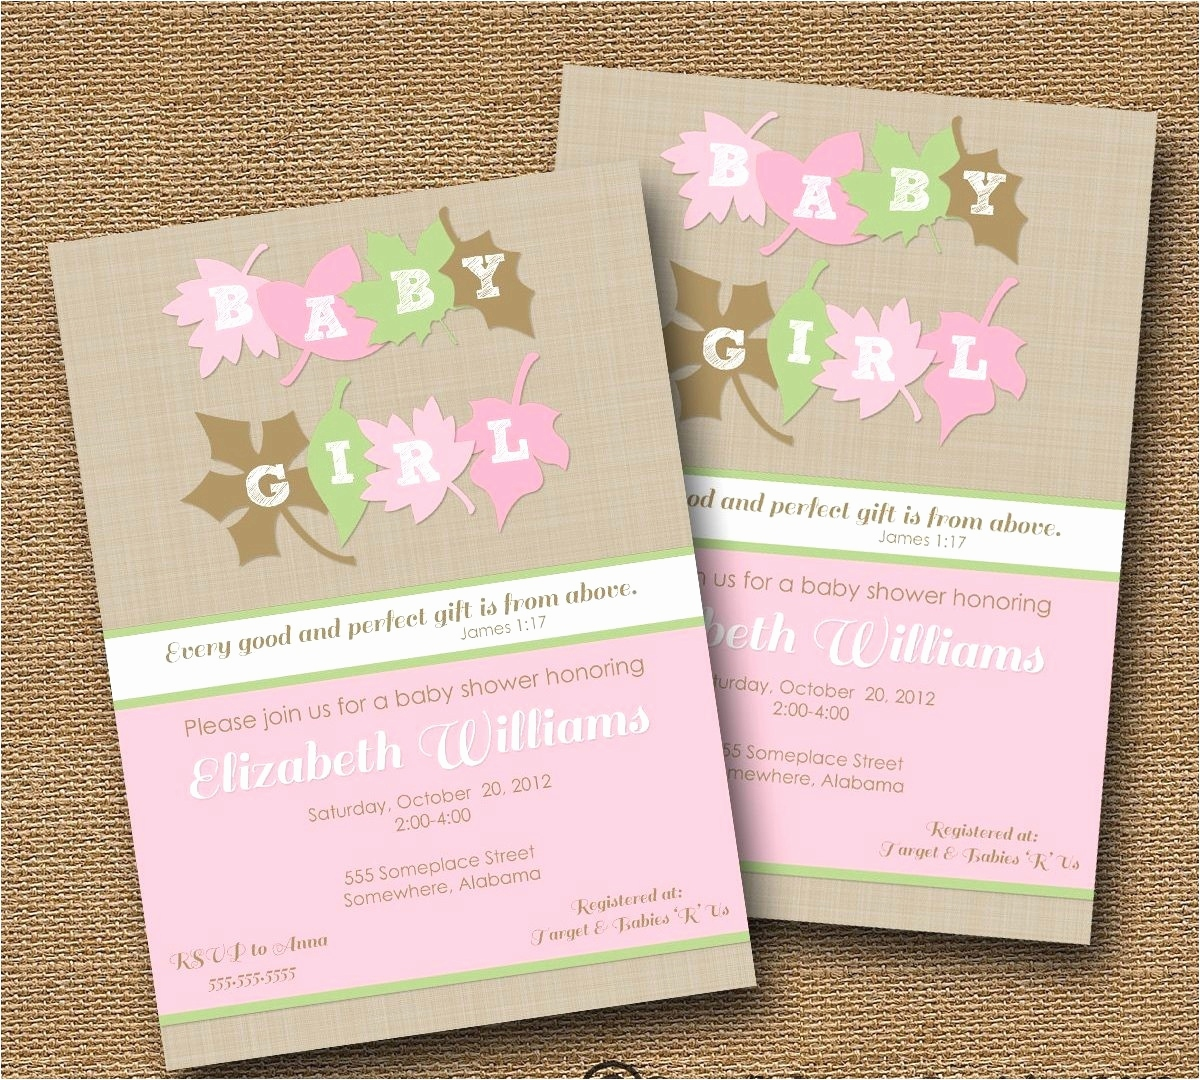 Babyparty Einladungskarten Luxus Free Baby Shower Invitation Templates for Word Professional Baby